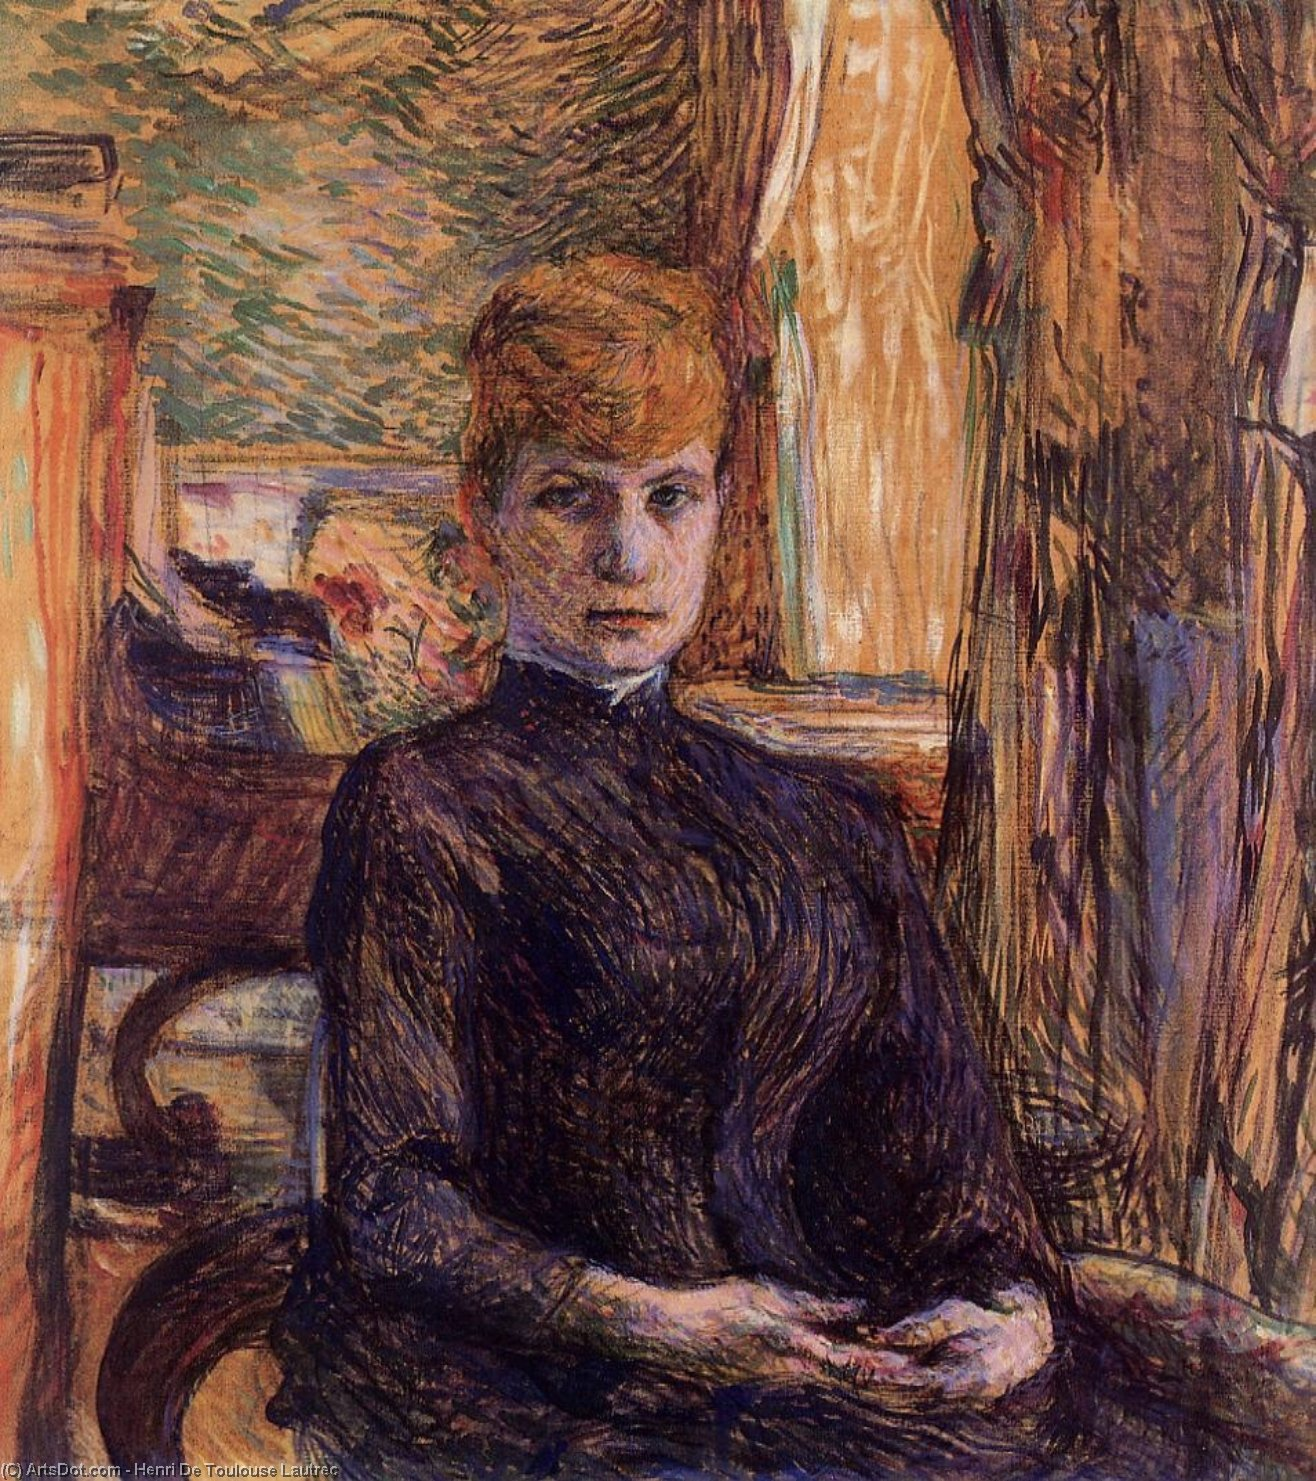 Madame Julieta Pascal, óleo sobre tela por Henri De Toulouse Lautrec (1864-1901, Second French Empire)